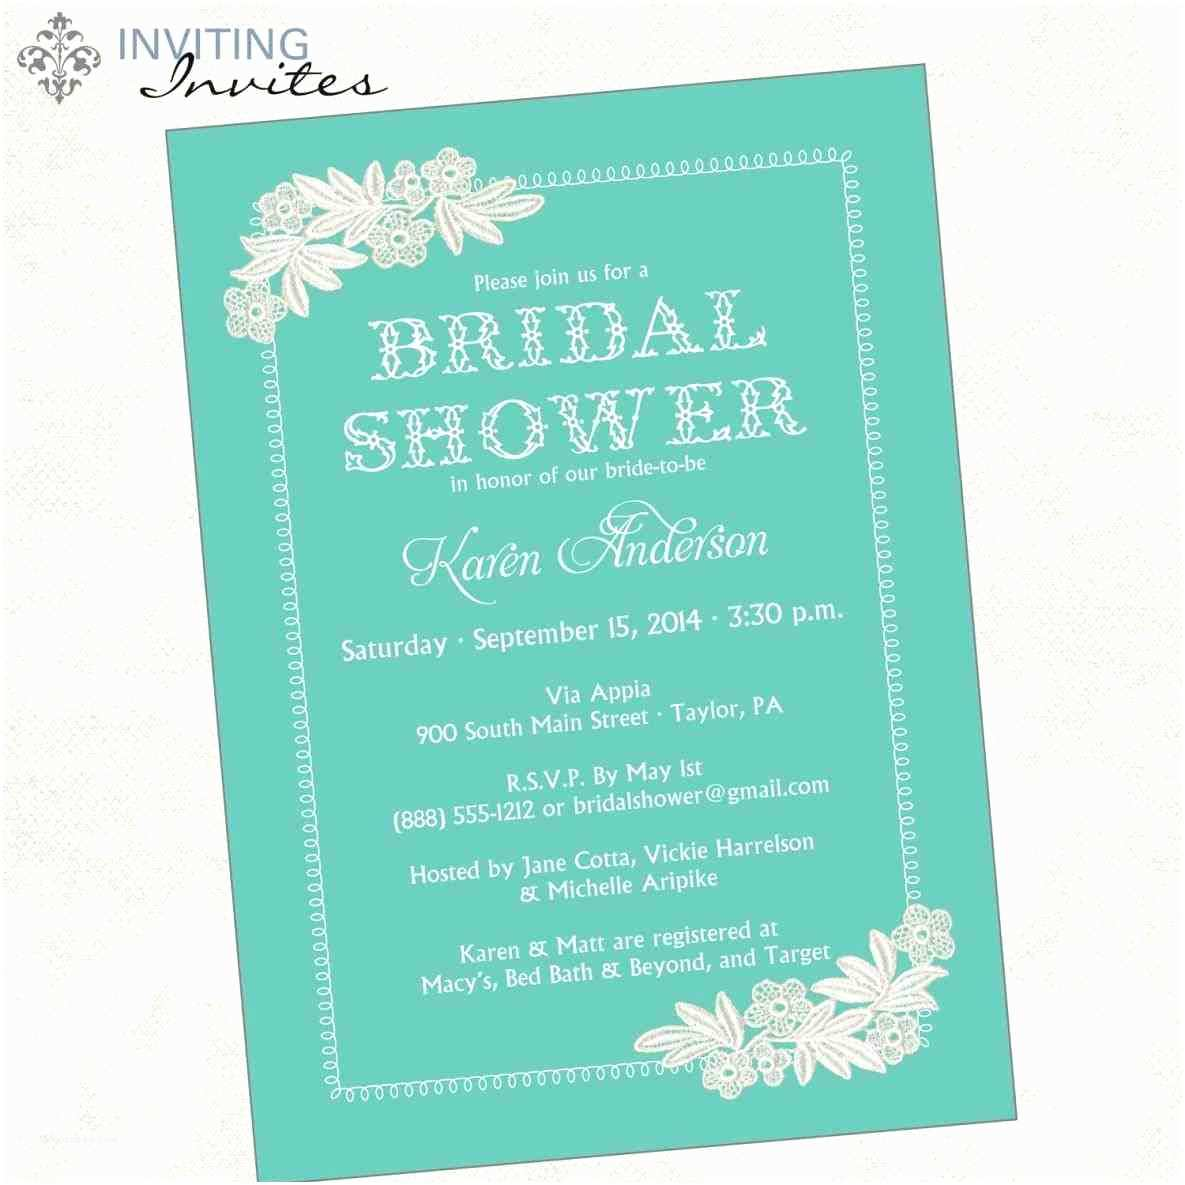 Jack and Jill Baby Shower Invitations Jack and Jill Wedding Shower Invitations Siudy